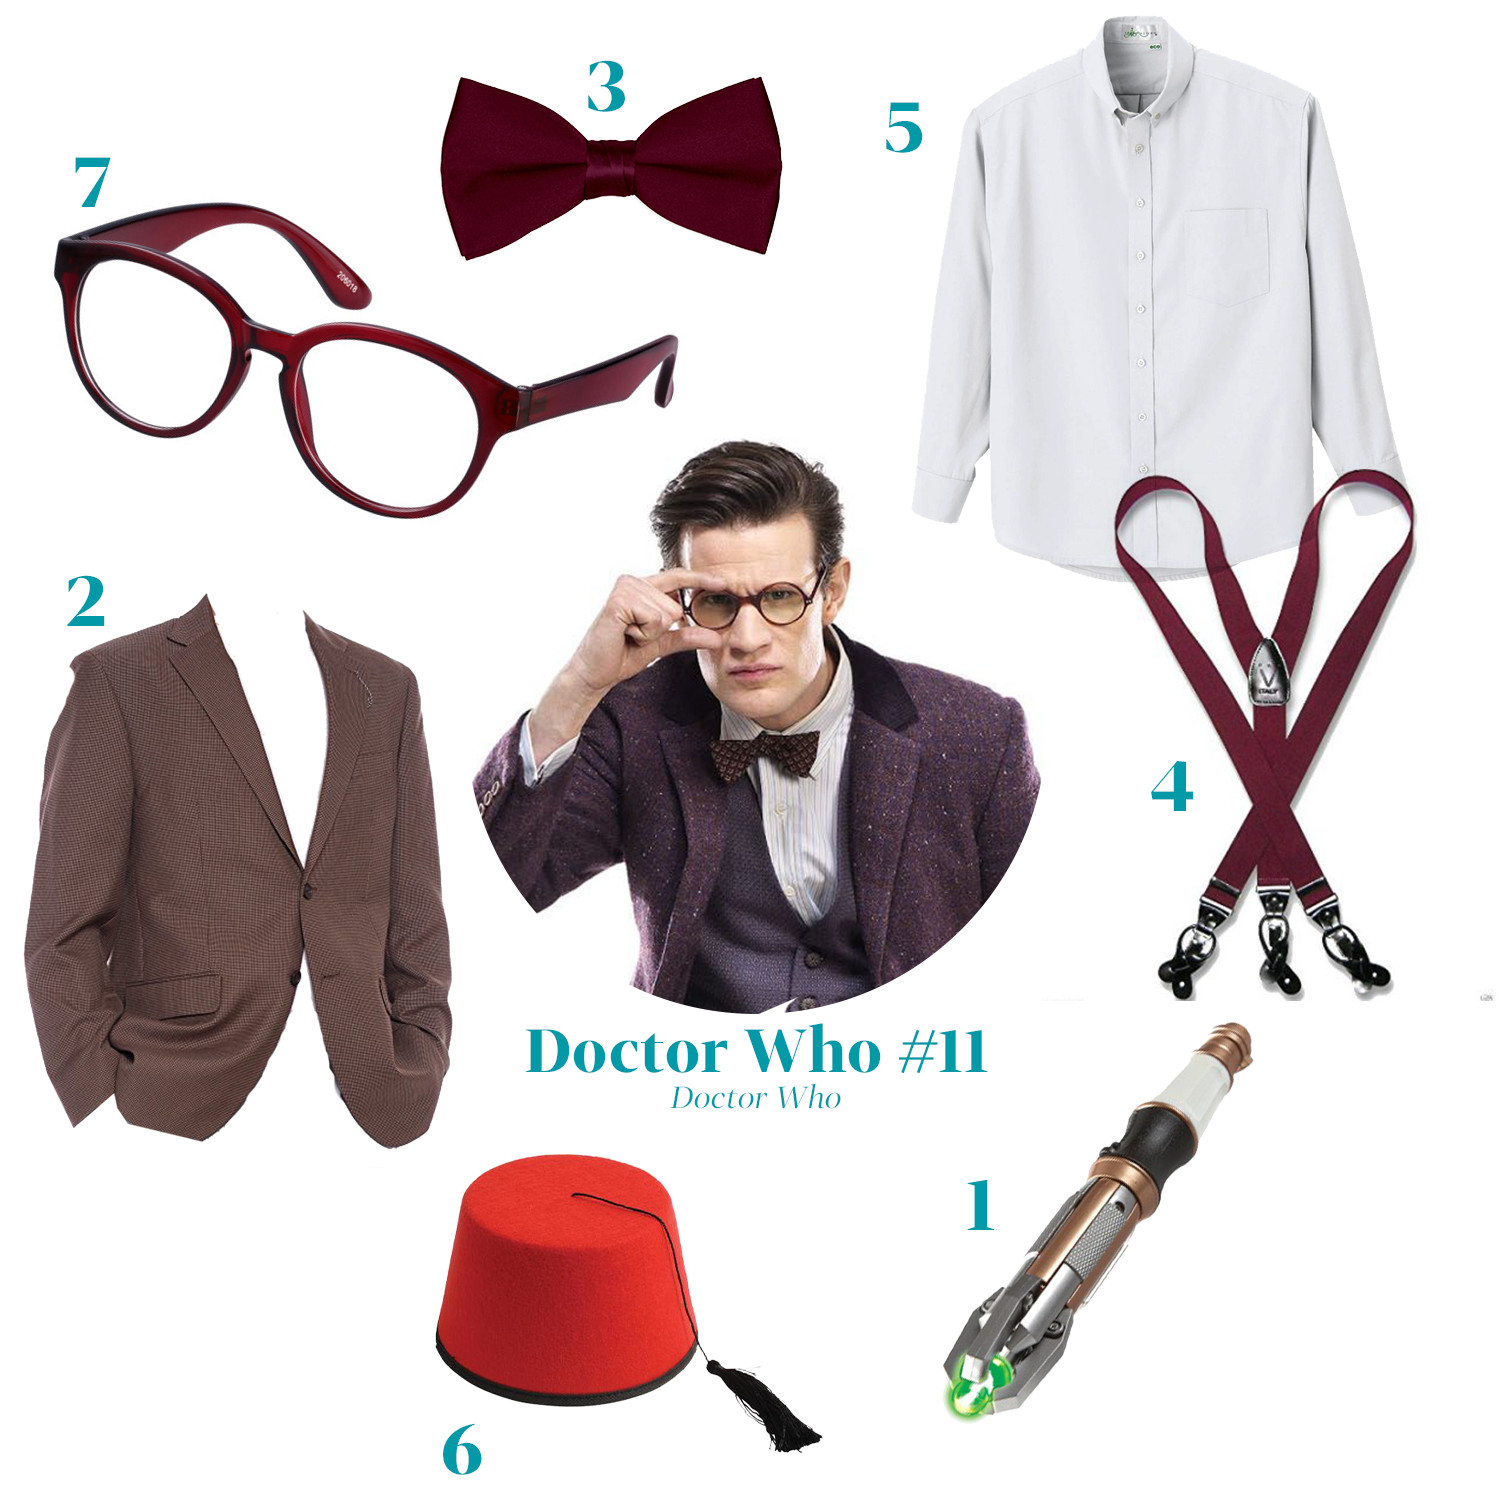 eleventh doctor who costume